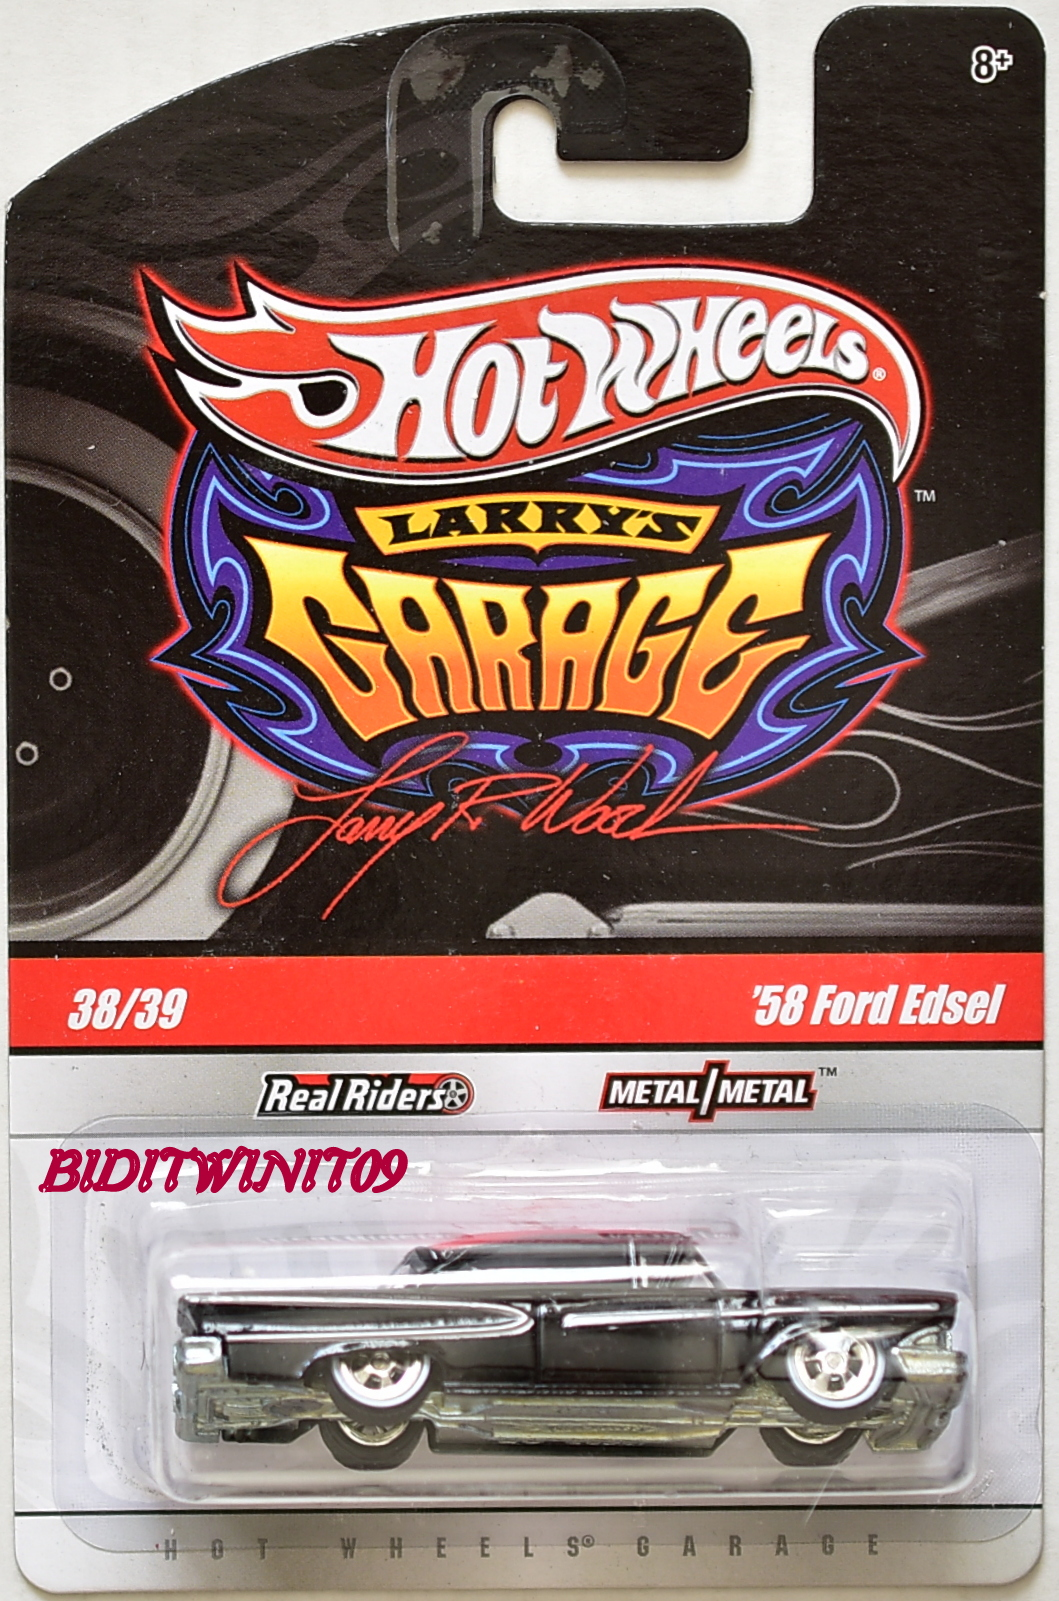 HOT WHEELS LARRY'S GARAGE '58 FORD EDSEL #38/39 BLACK